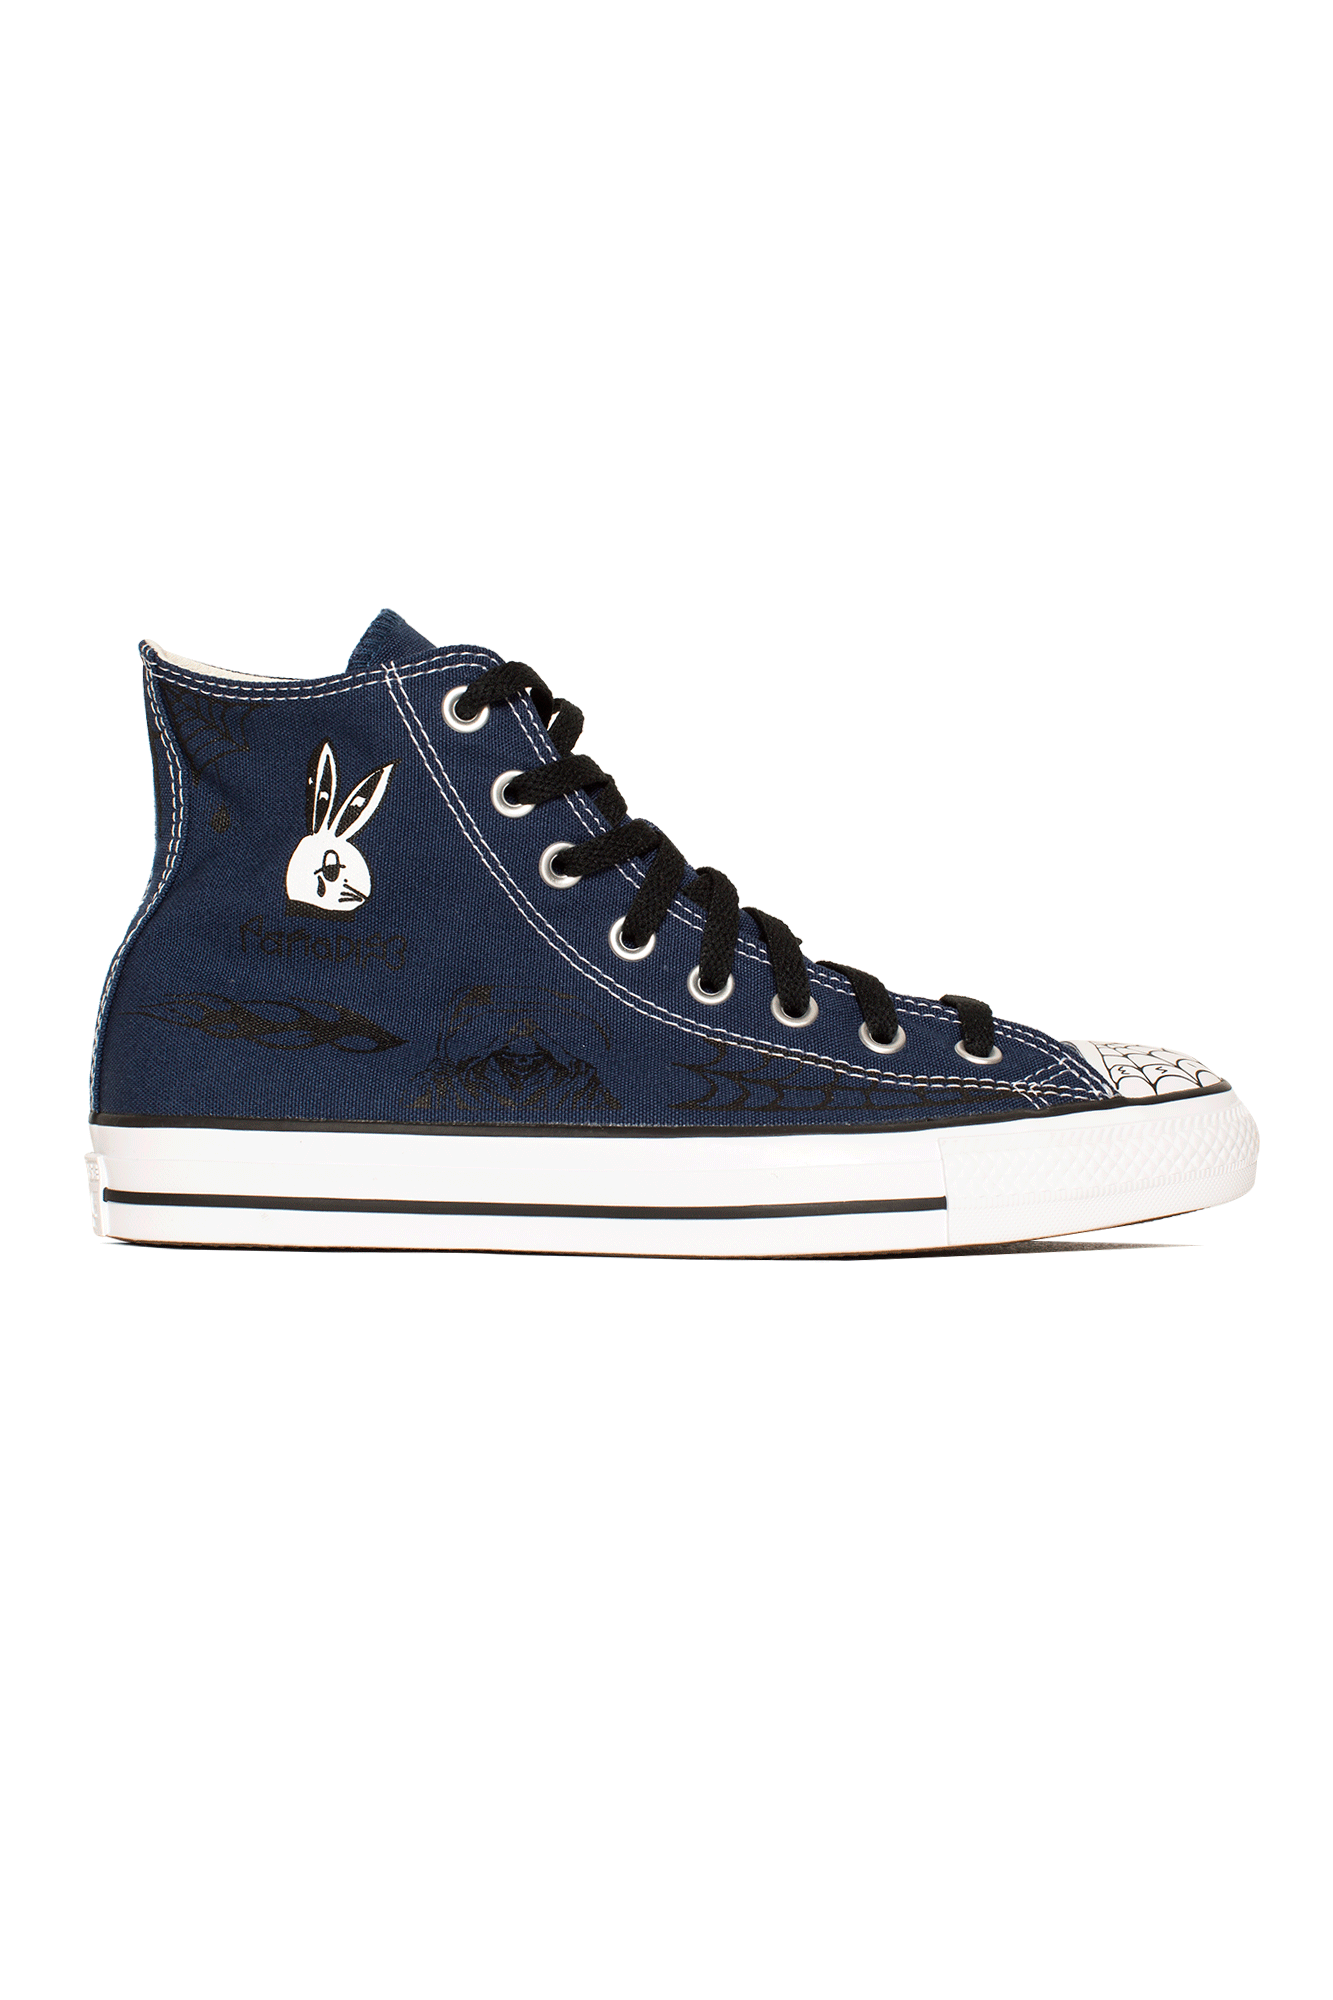 Chuck Taylor All Star Pro SP Hi Blu